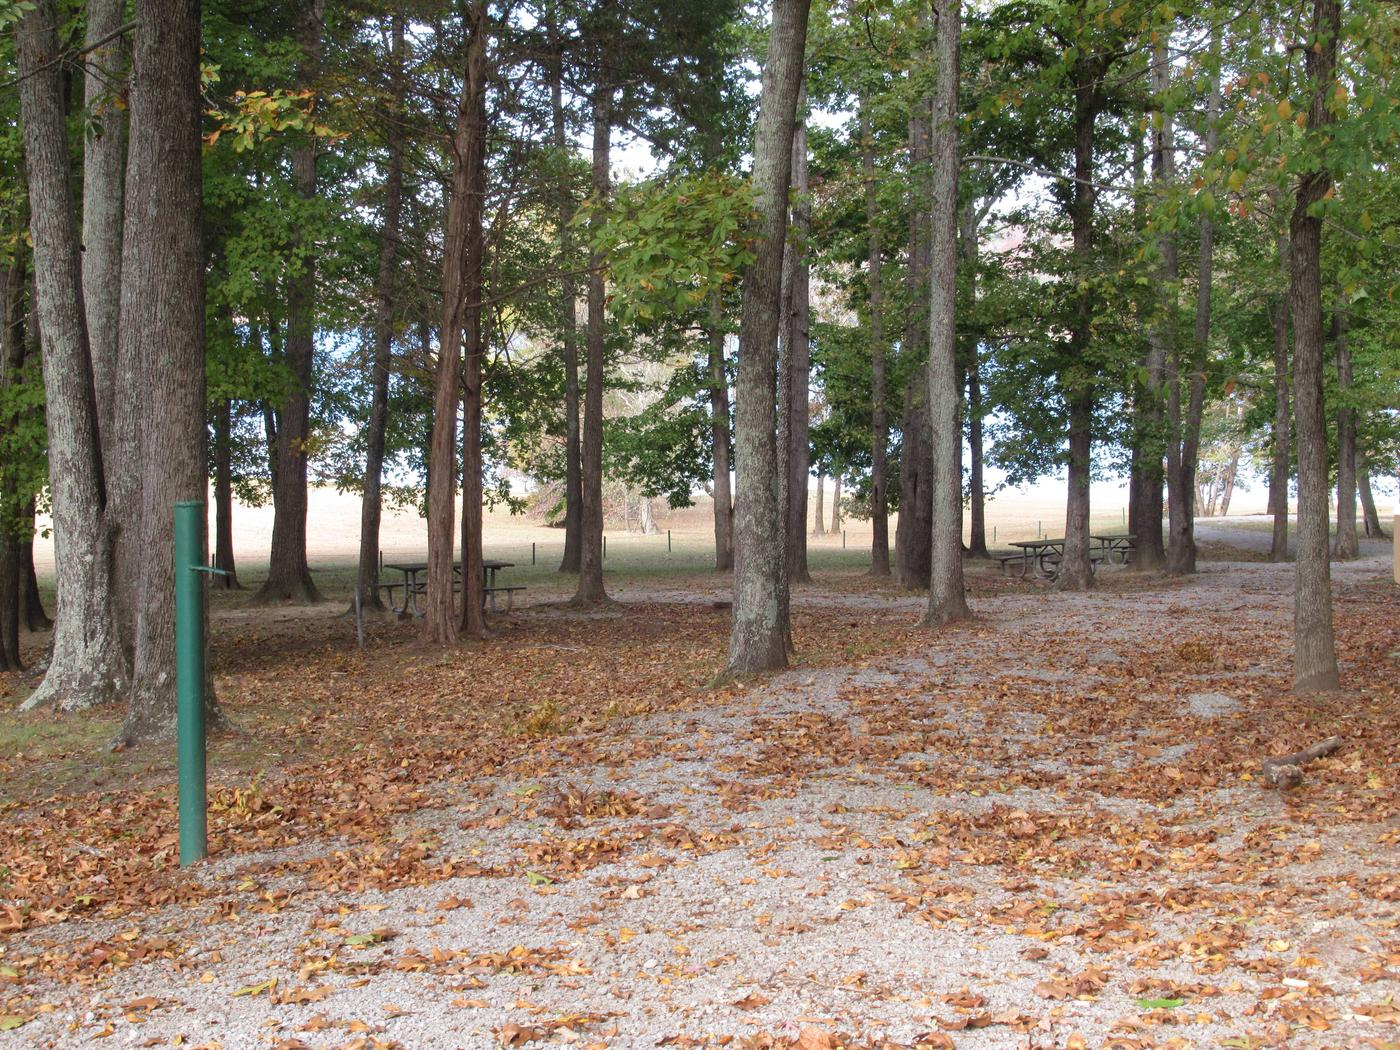 Smith Ridge Picnic AreaPicnic Area located near the beach about 2 miles from campground